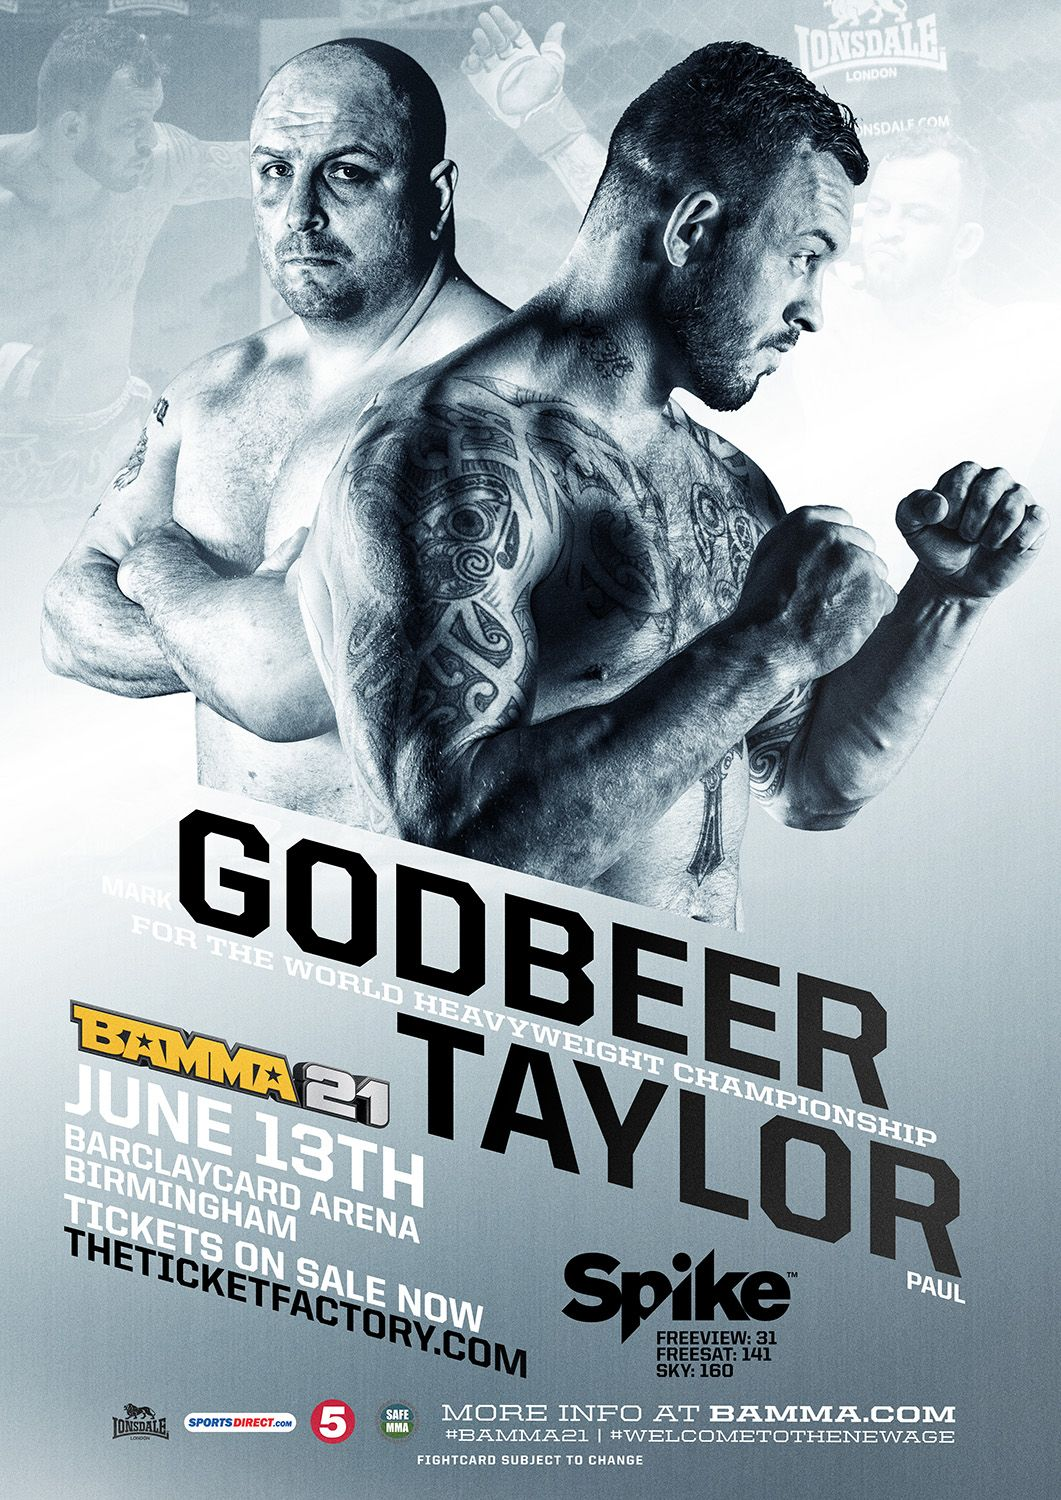 Mark The Hand Of Godbeer Vs Paul Titan Taylor Bamma World Heavyweight Title Bamma21 Mma Welcometothenewage Mma June Taylor Poster